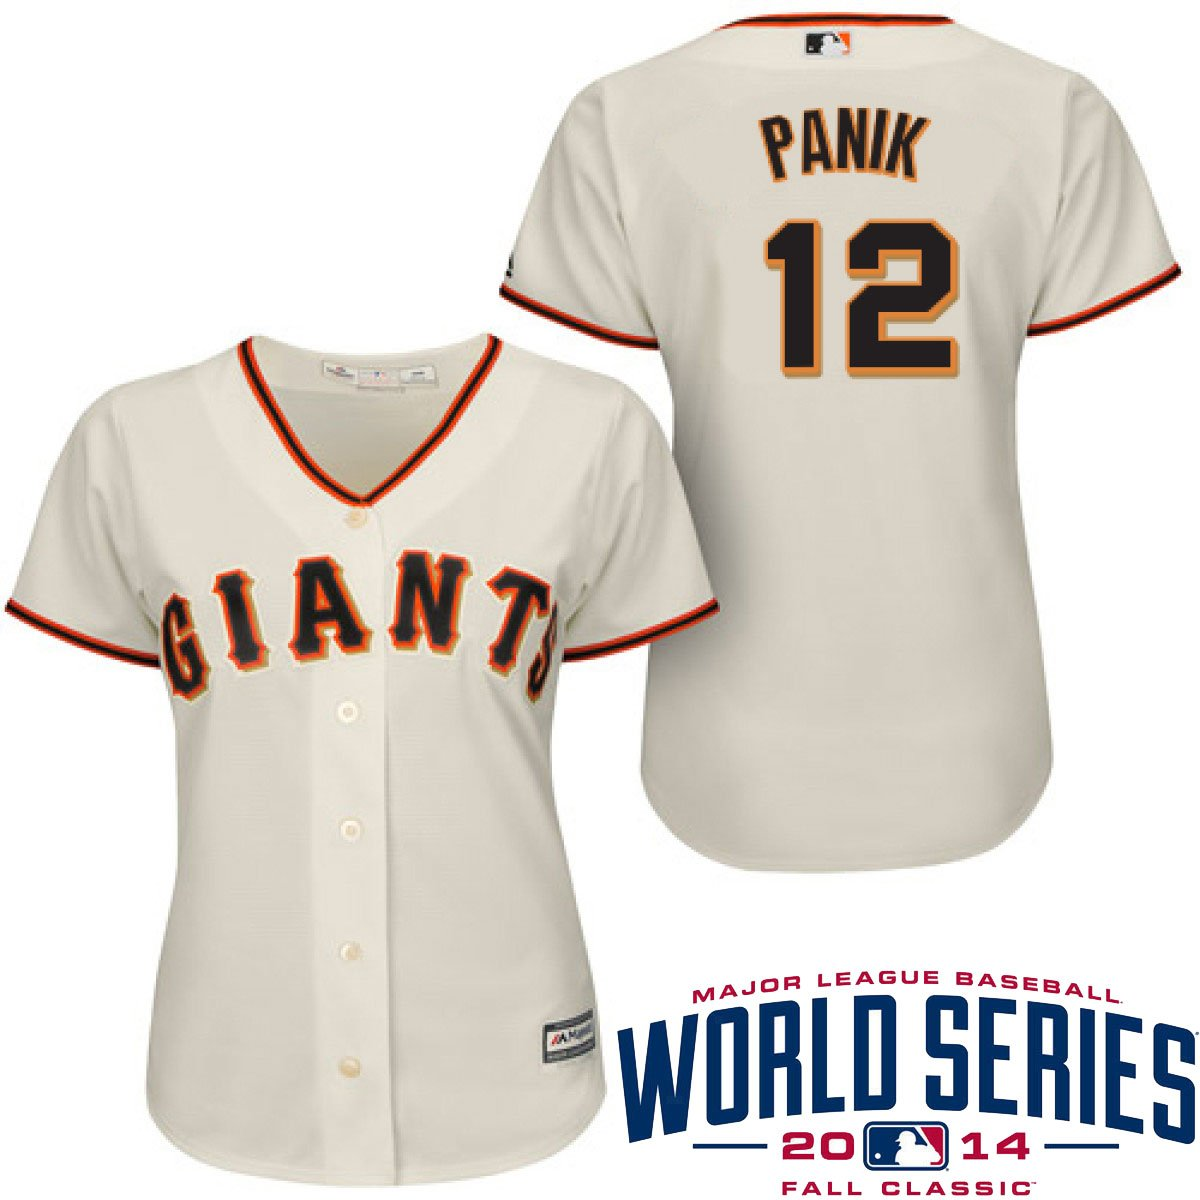 San Francisco Giants Bumgarner Jersey Joe Panik San Francisco Giants